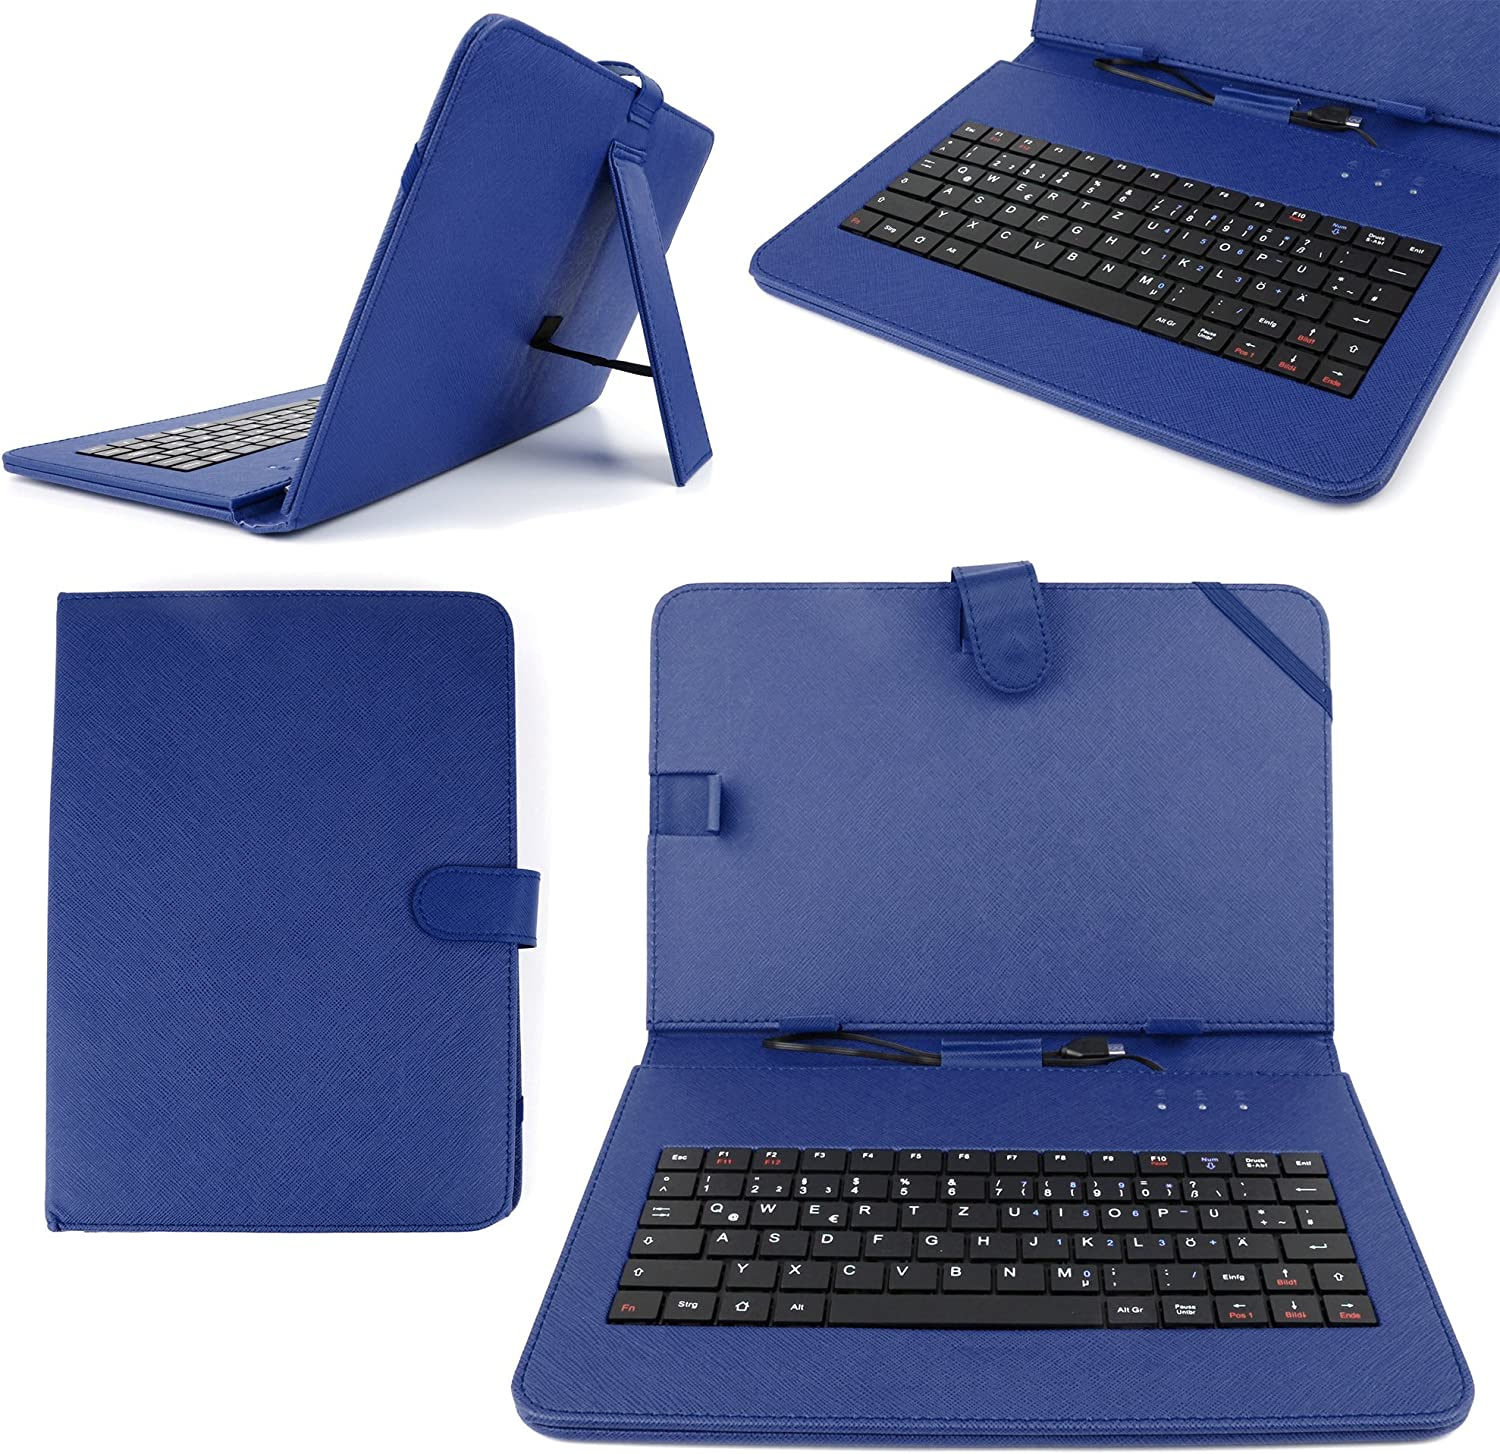 """DURAGADGET Durable Blue Faux Leather Protective Case Cover with Micro USB German Keyboard & Built in Stand for Lenovo IdeaTab/OLPC XO-10 10.1"""" / Bullman TAB9 AQQR/HP ElitePad 900 G1"""